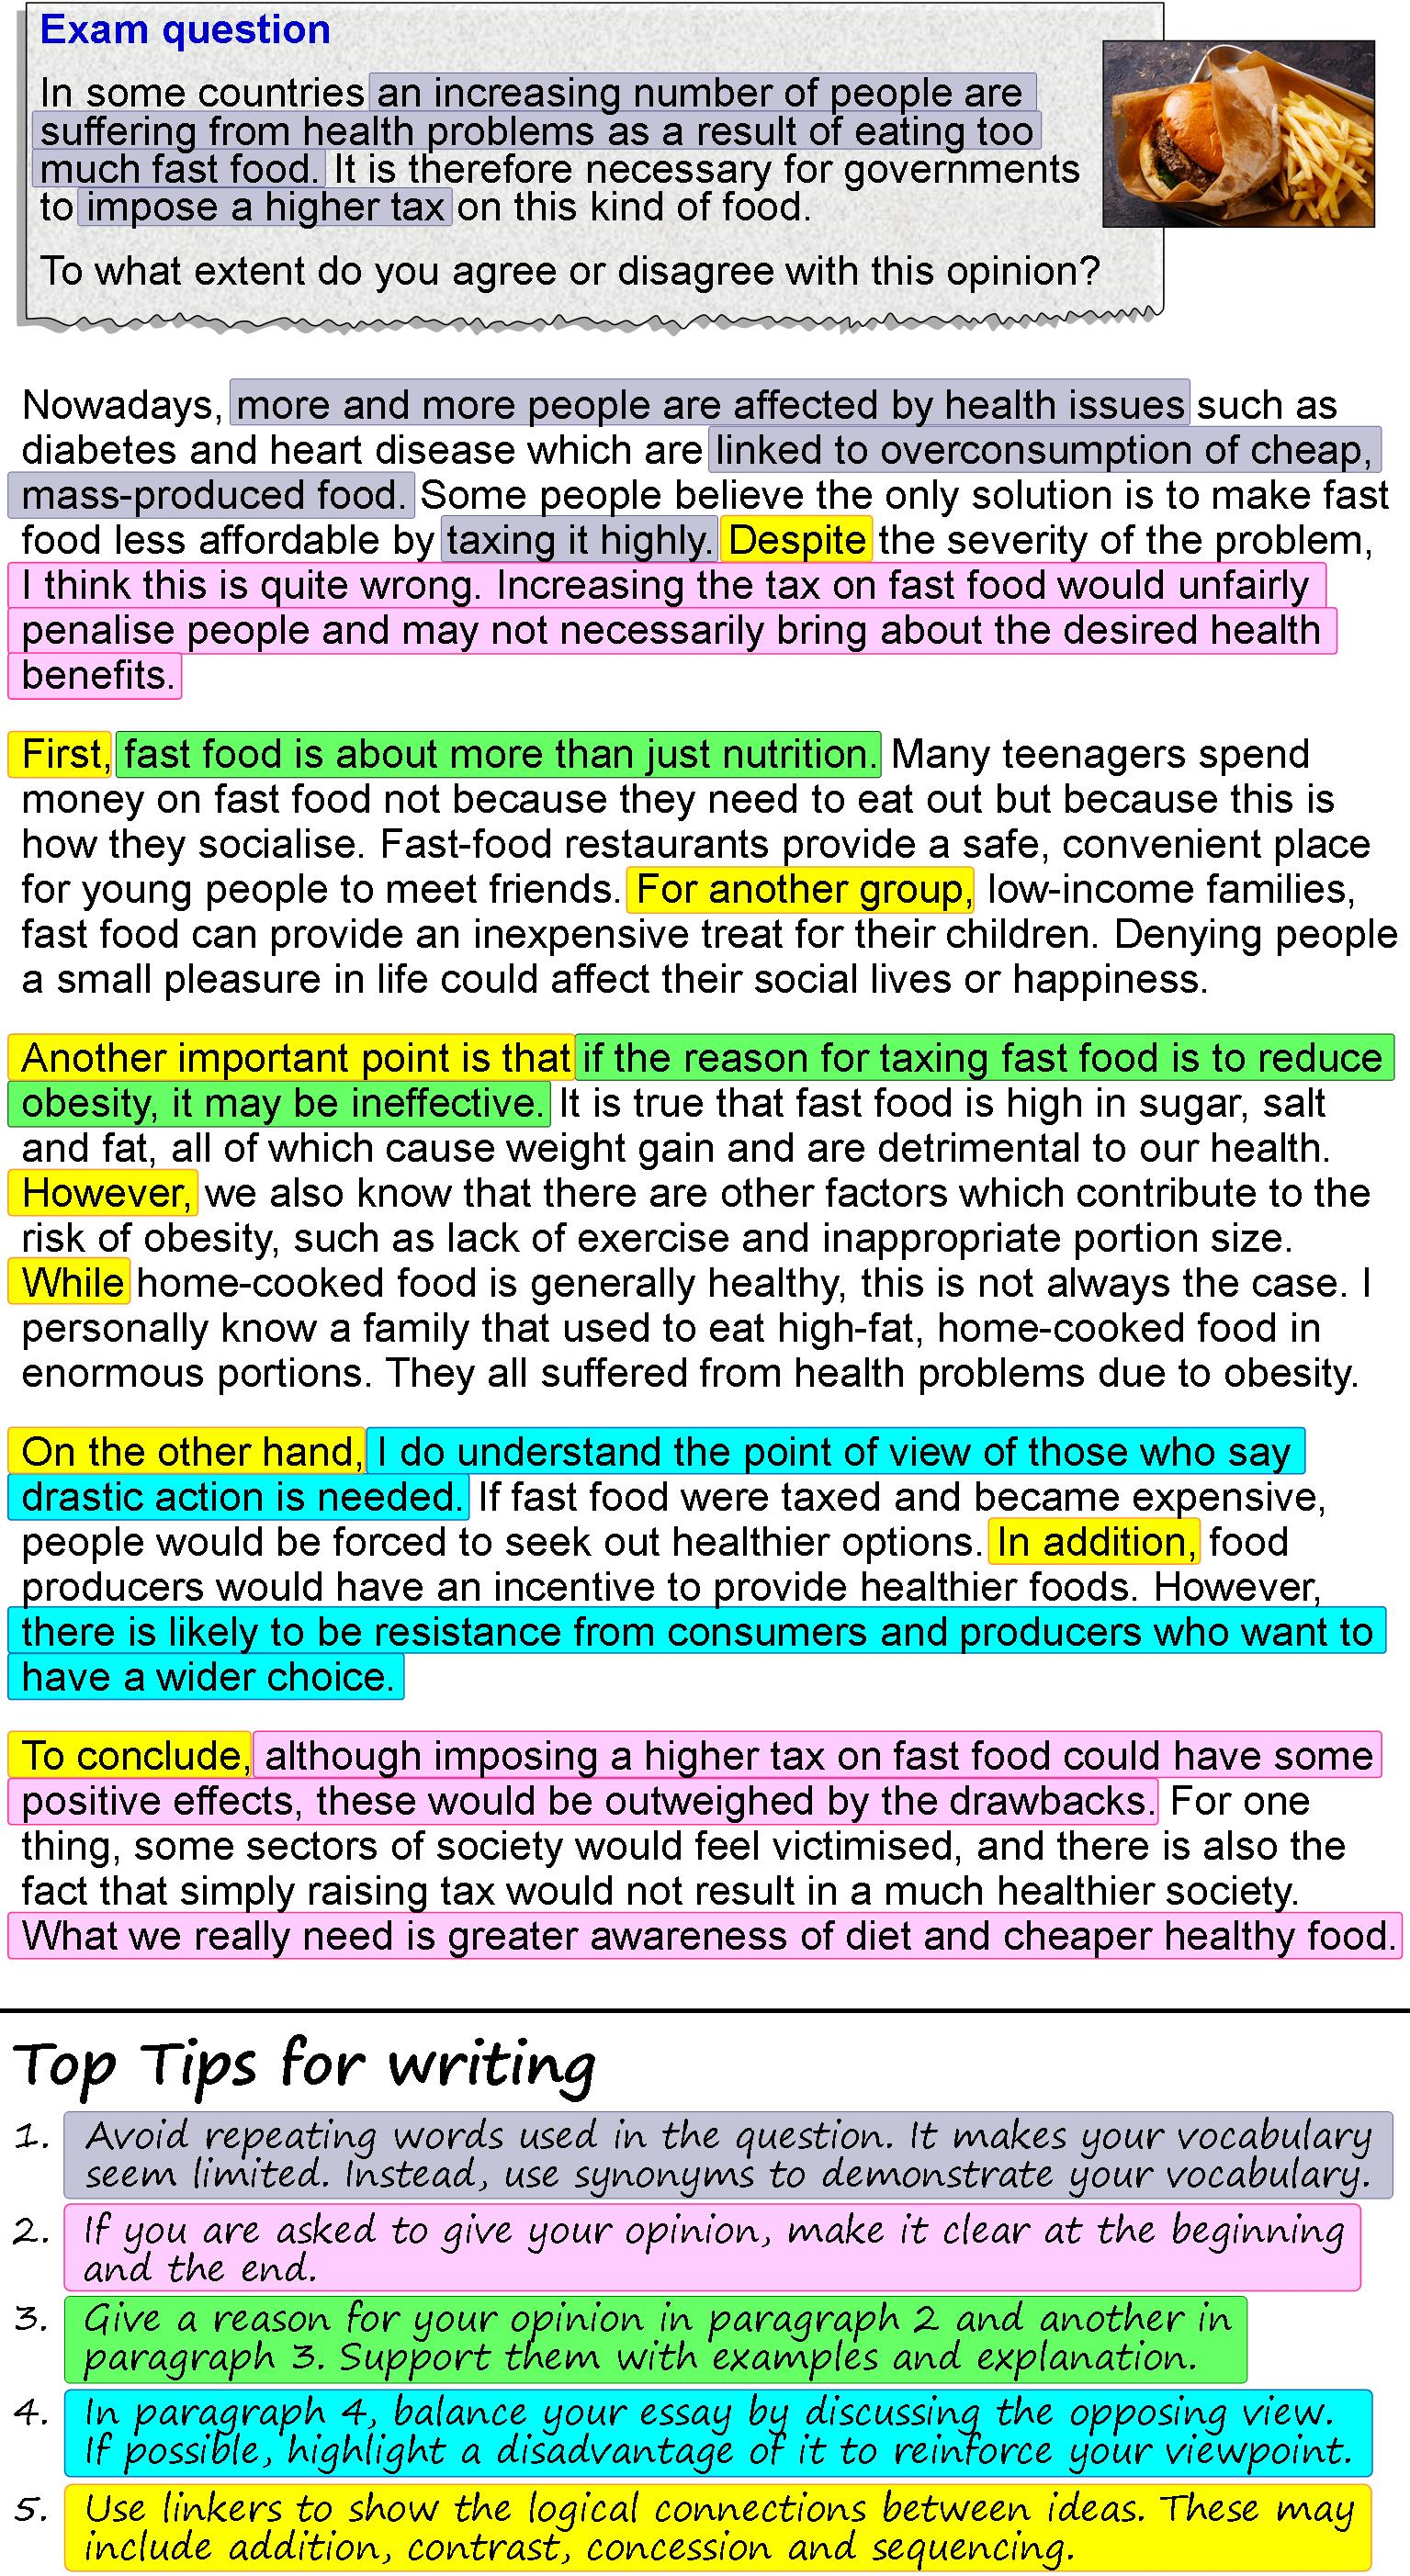 001 Opinion Essay About Fast Food Example An 4 Unbelievable British Council Full